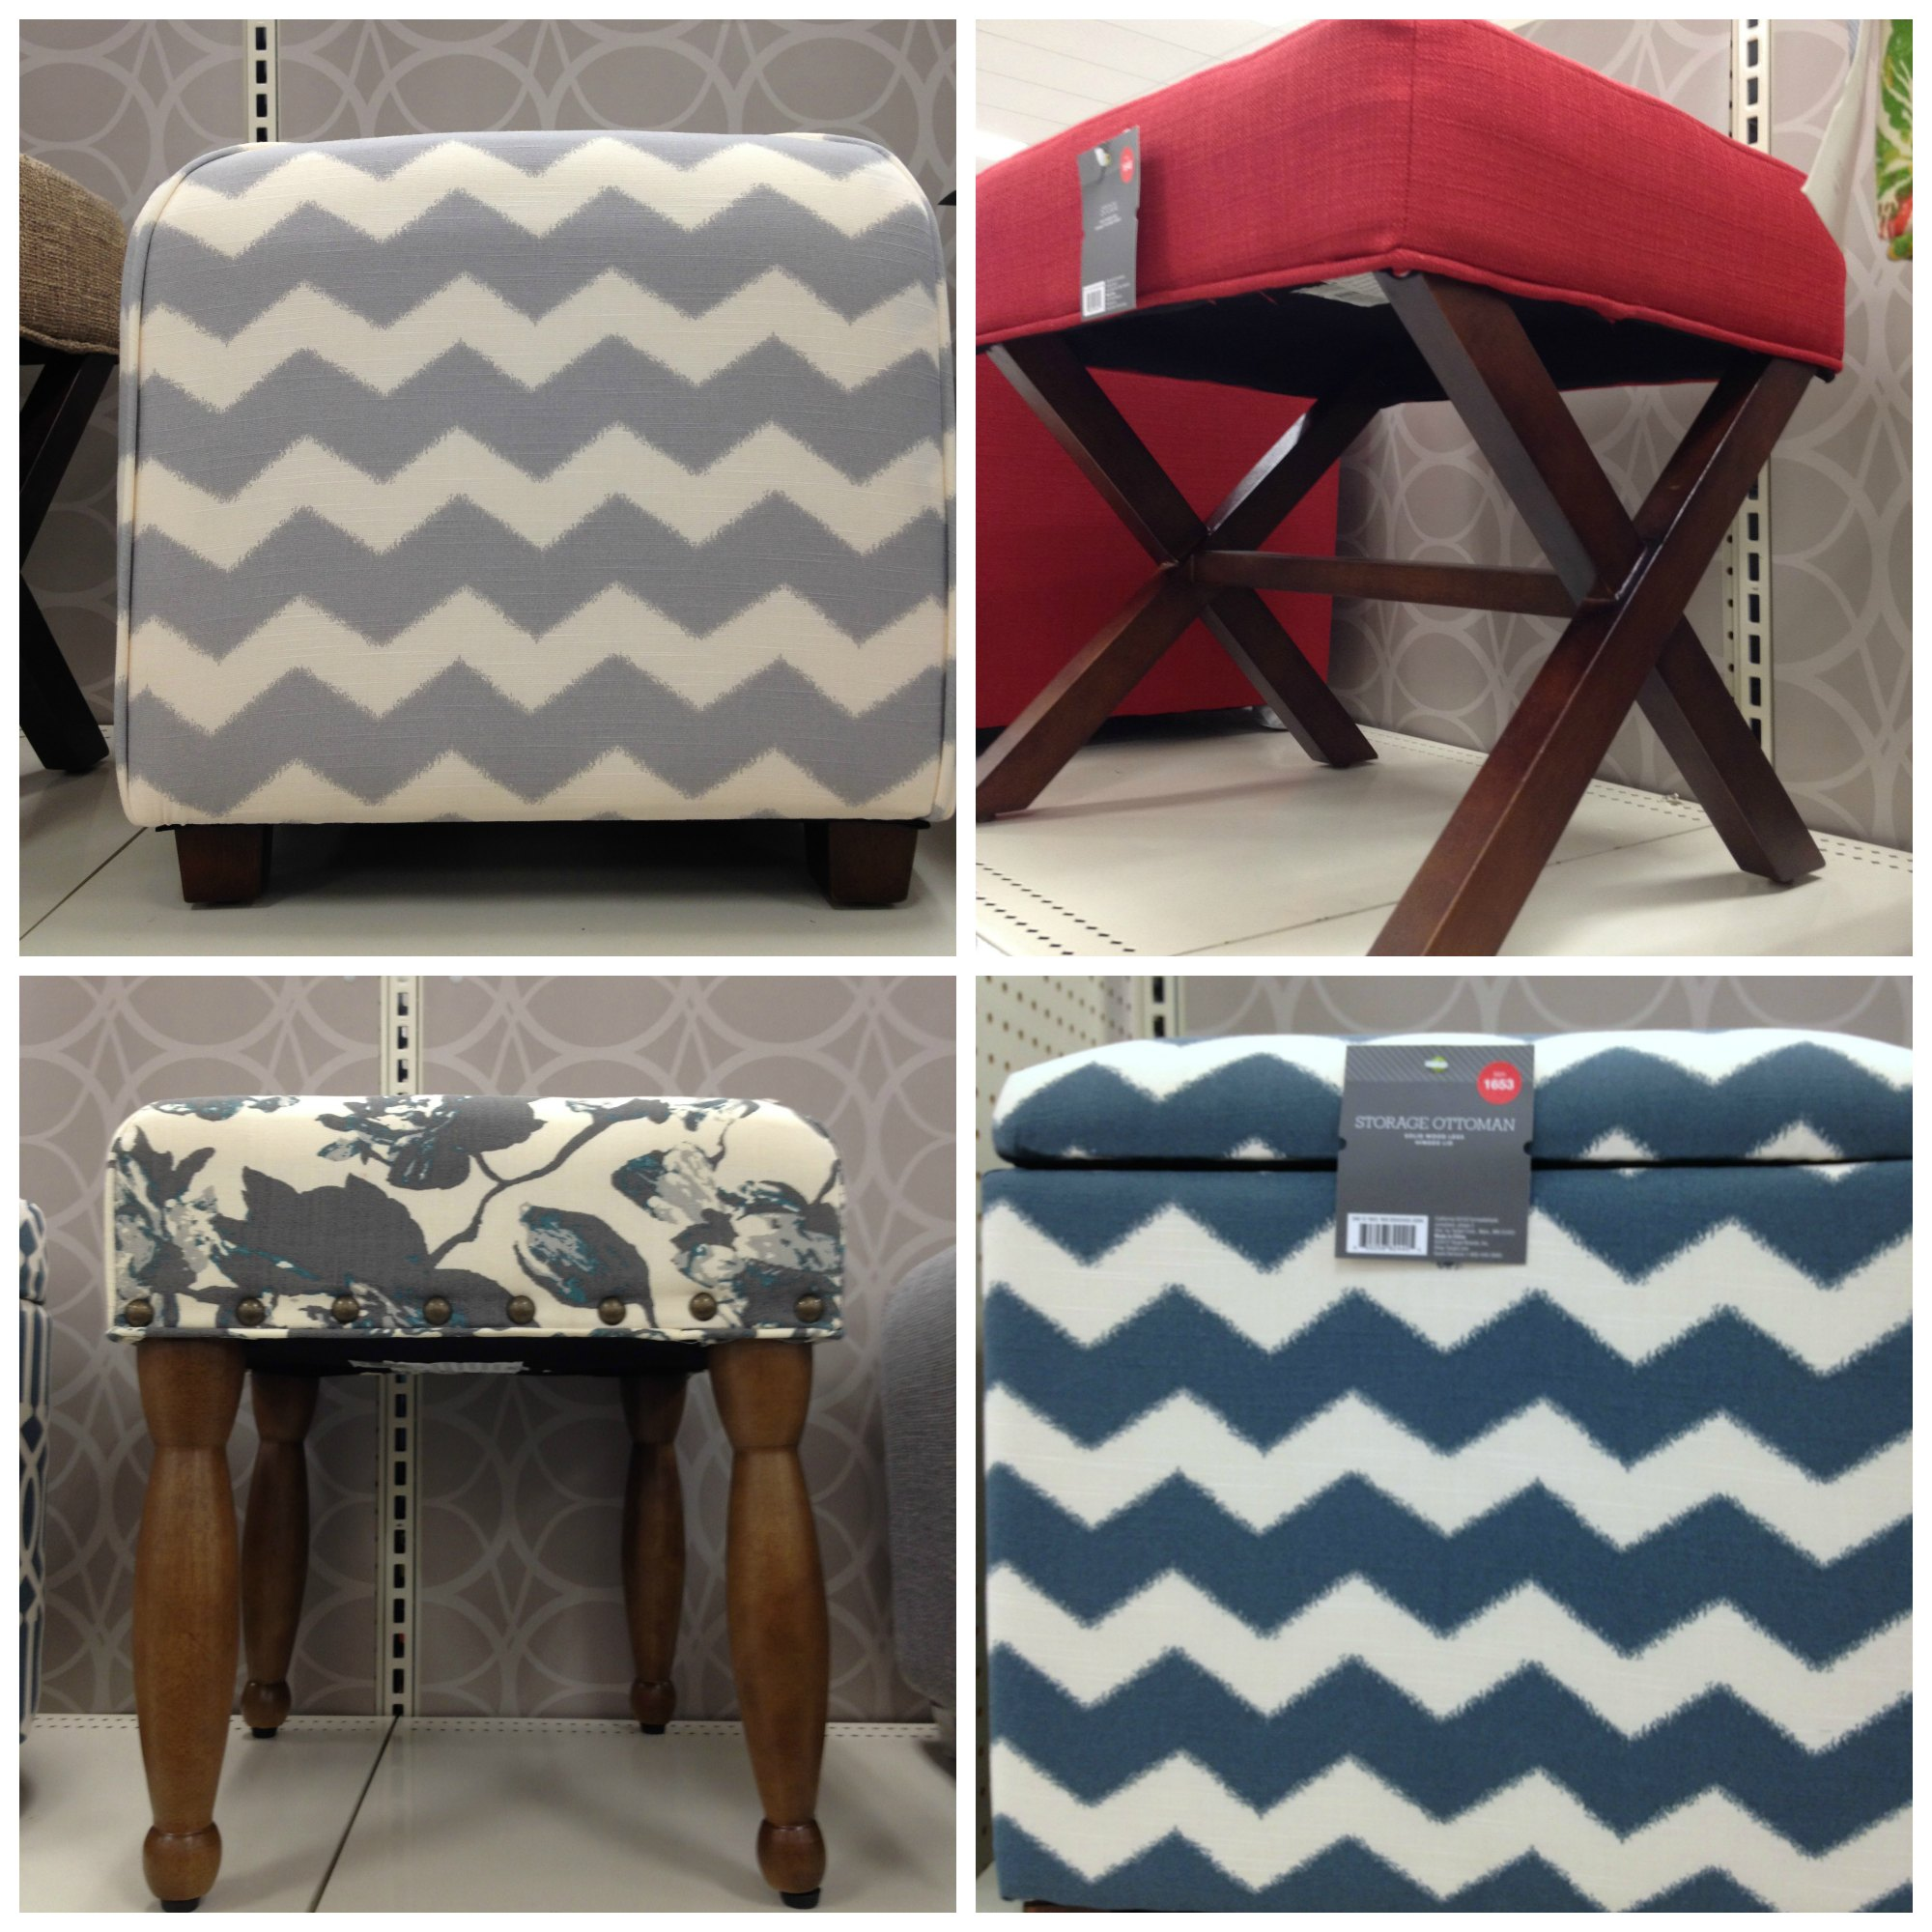 Surprising On Target Ottomans Pouffs And Stools Oh My Caraccident5 Cool Chair Designs And Ideas Caraccident5Info